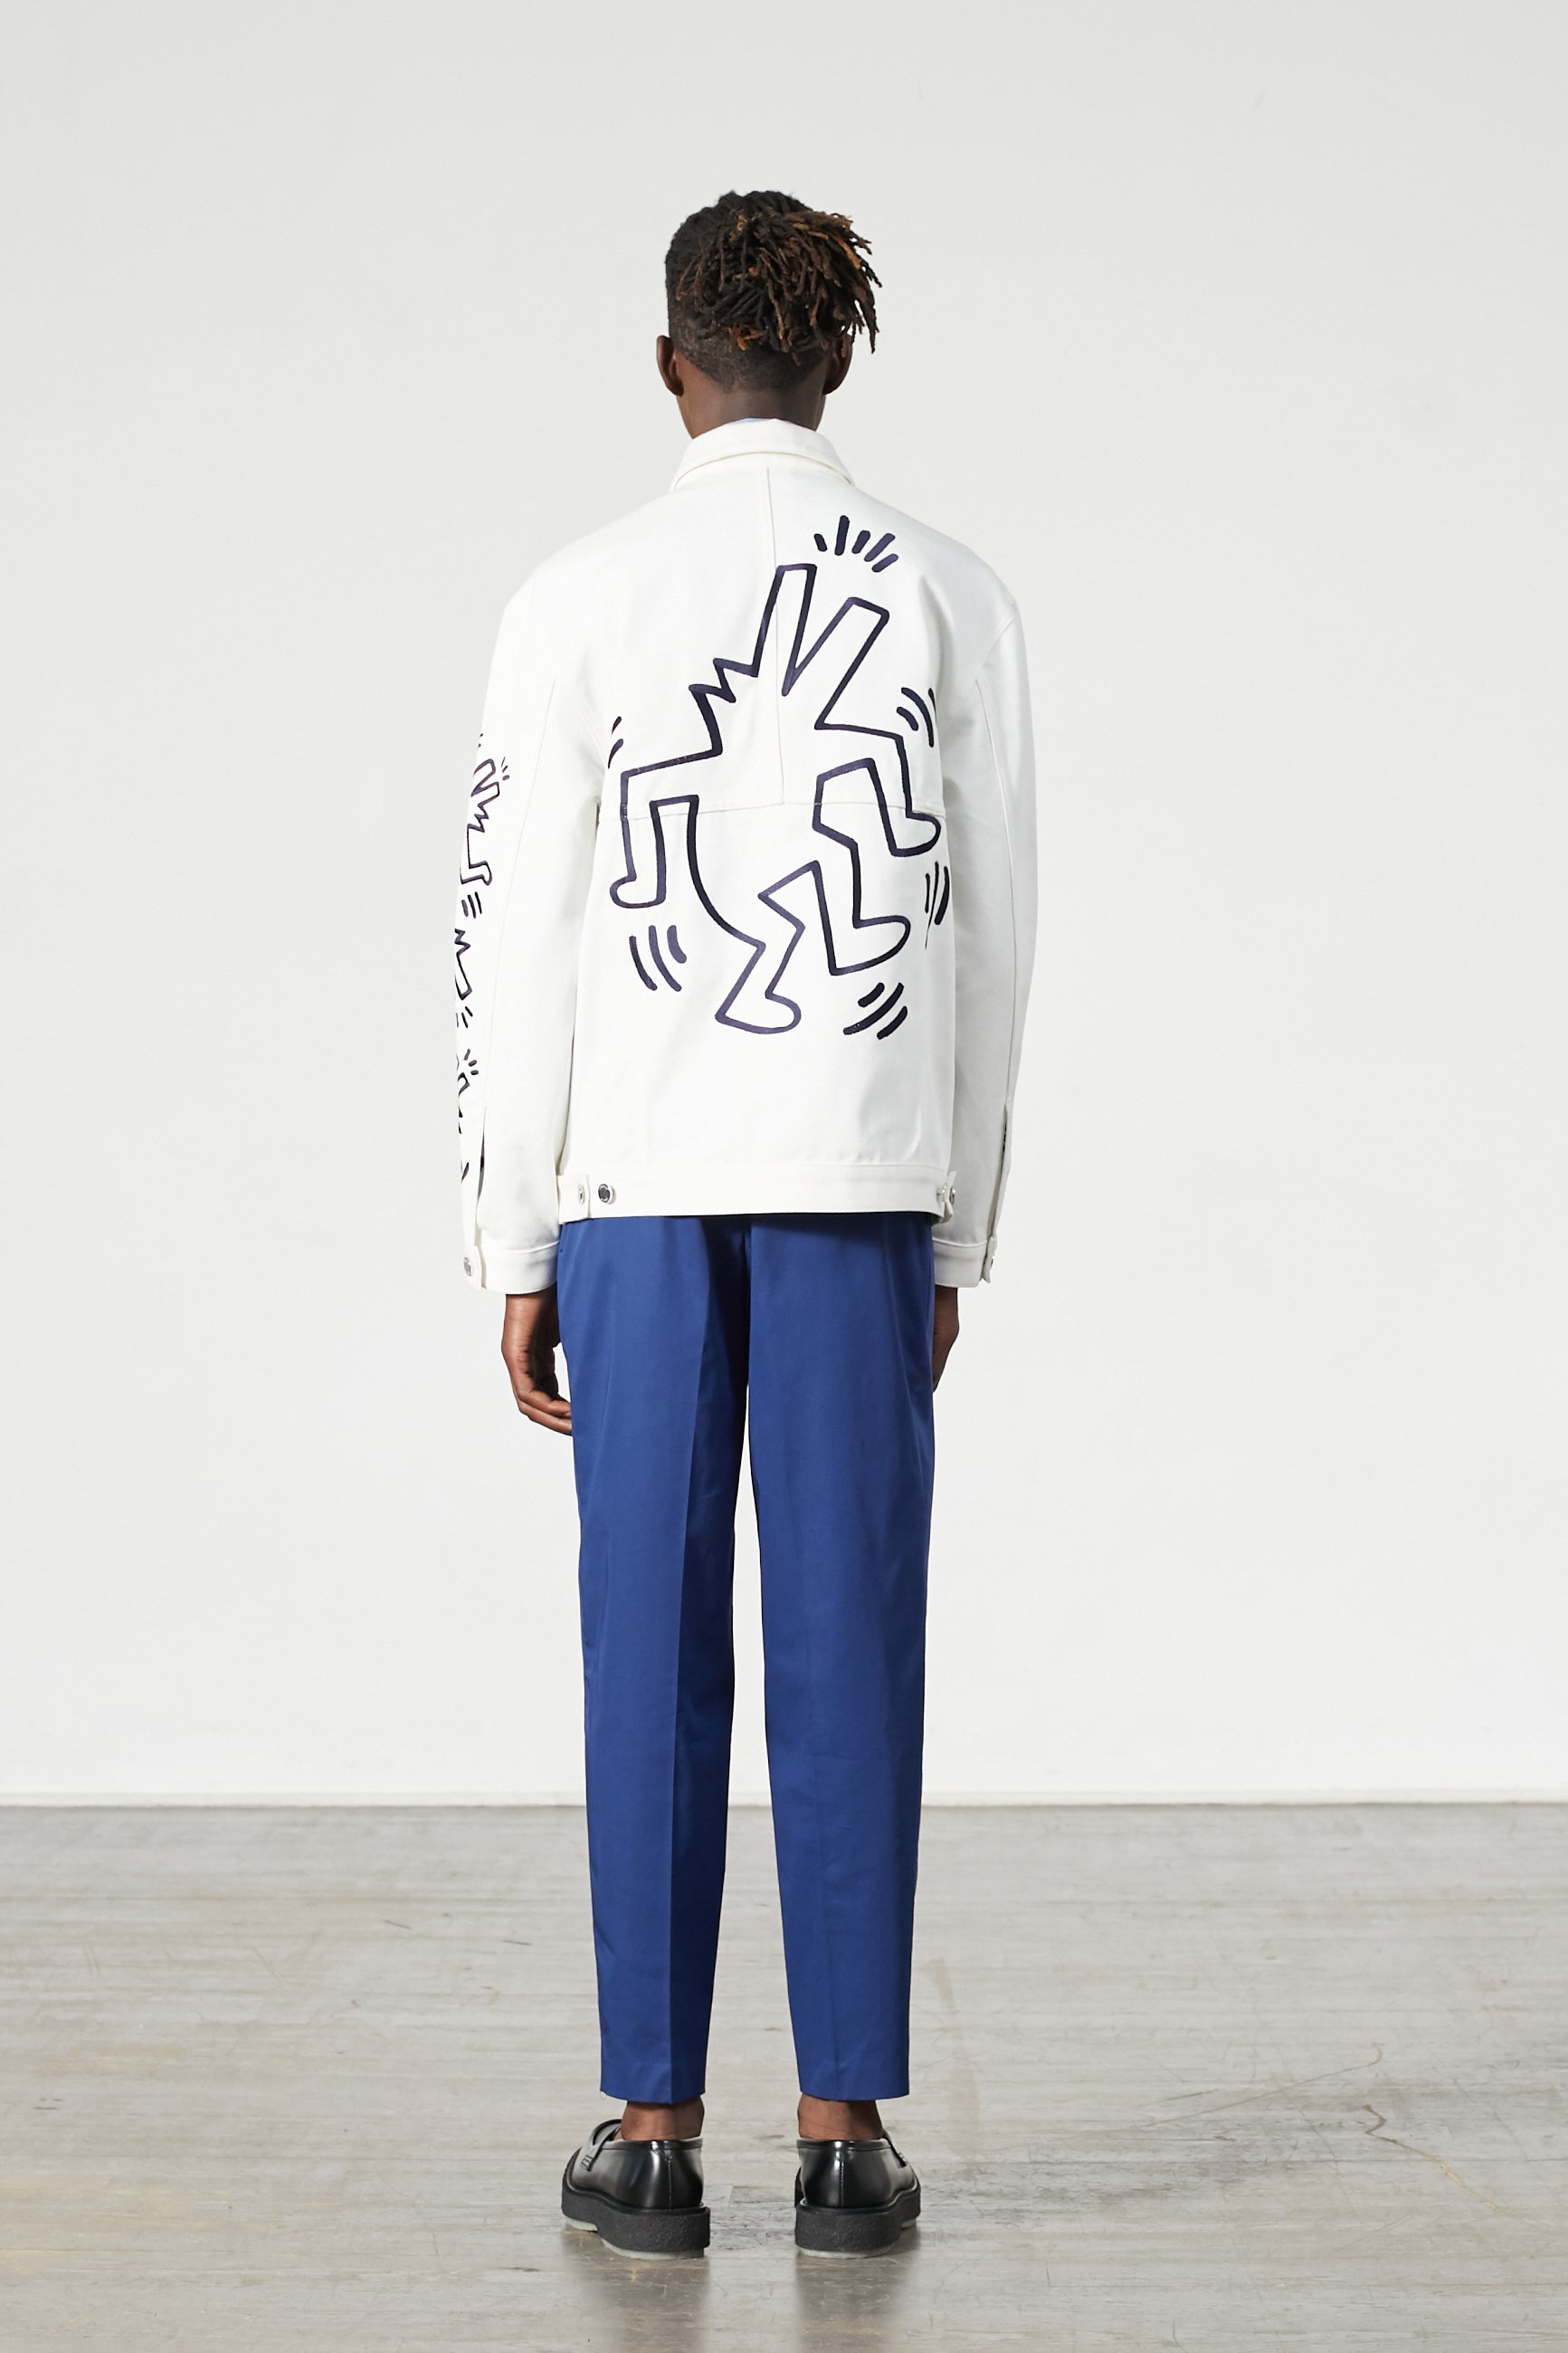 GUEST DENIM KEITH HARING WHITE